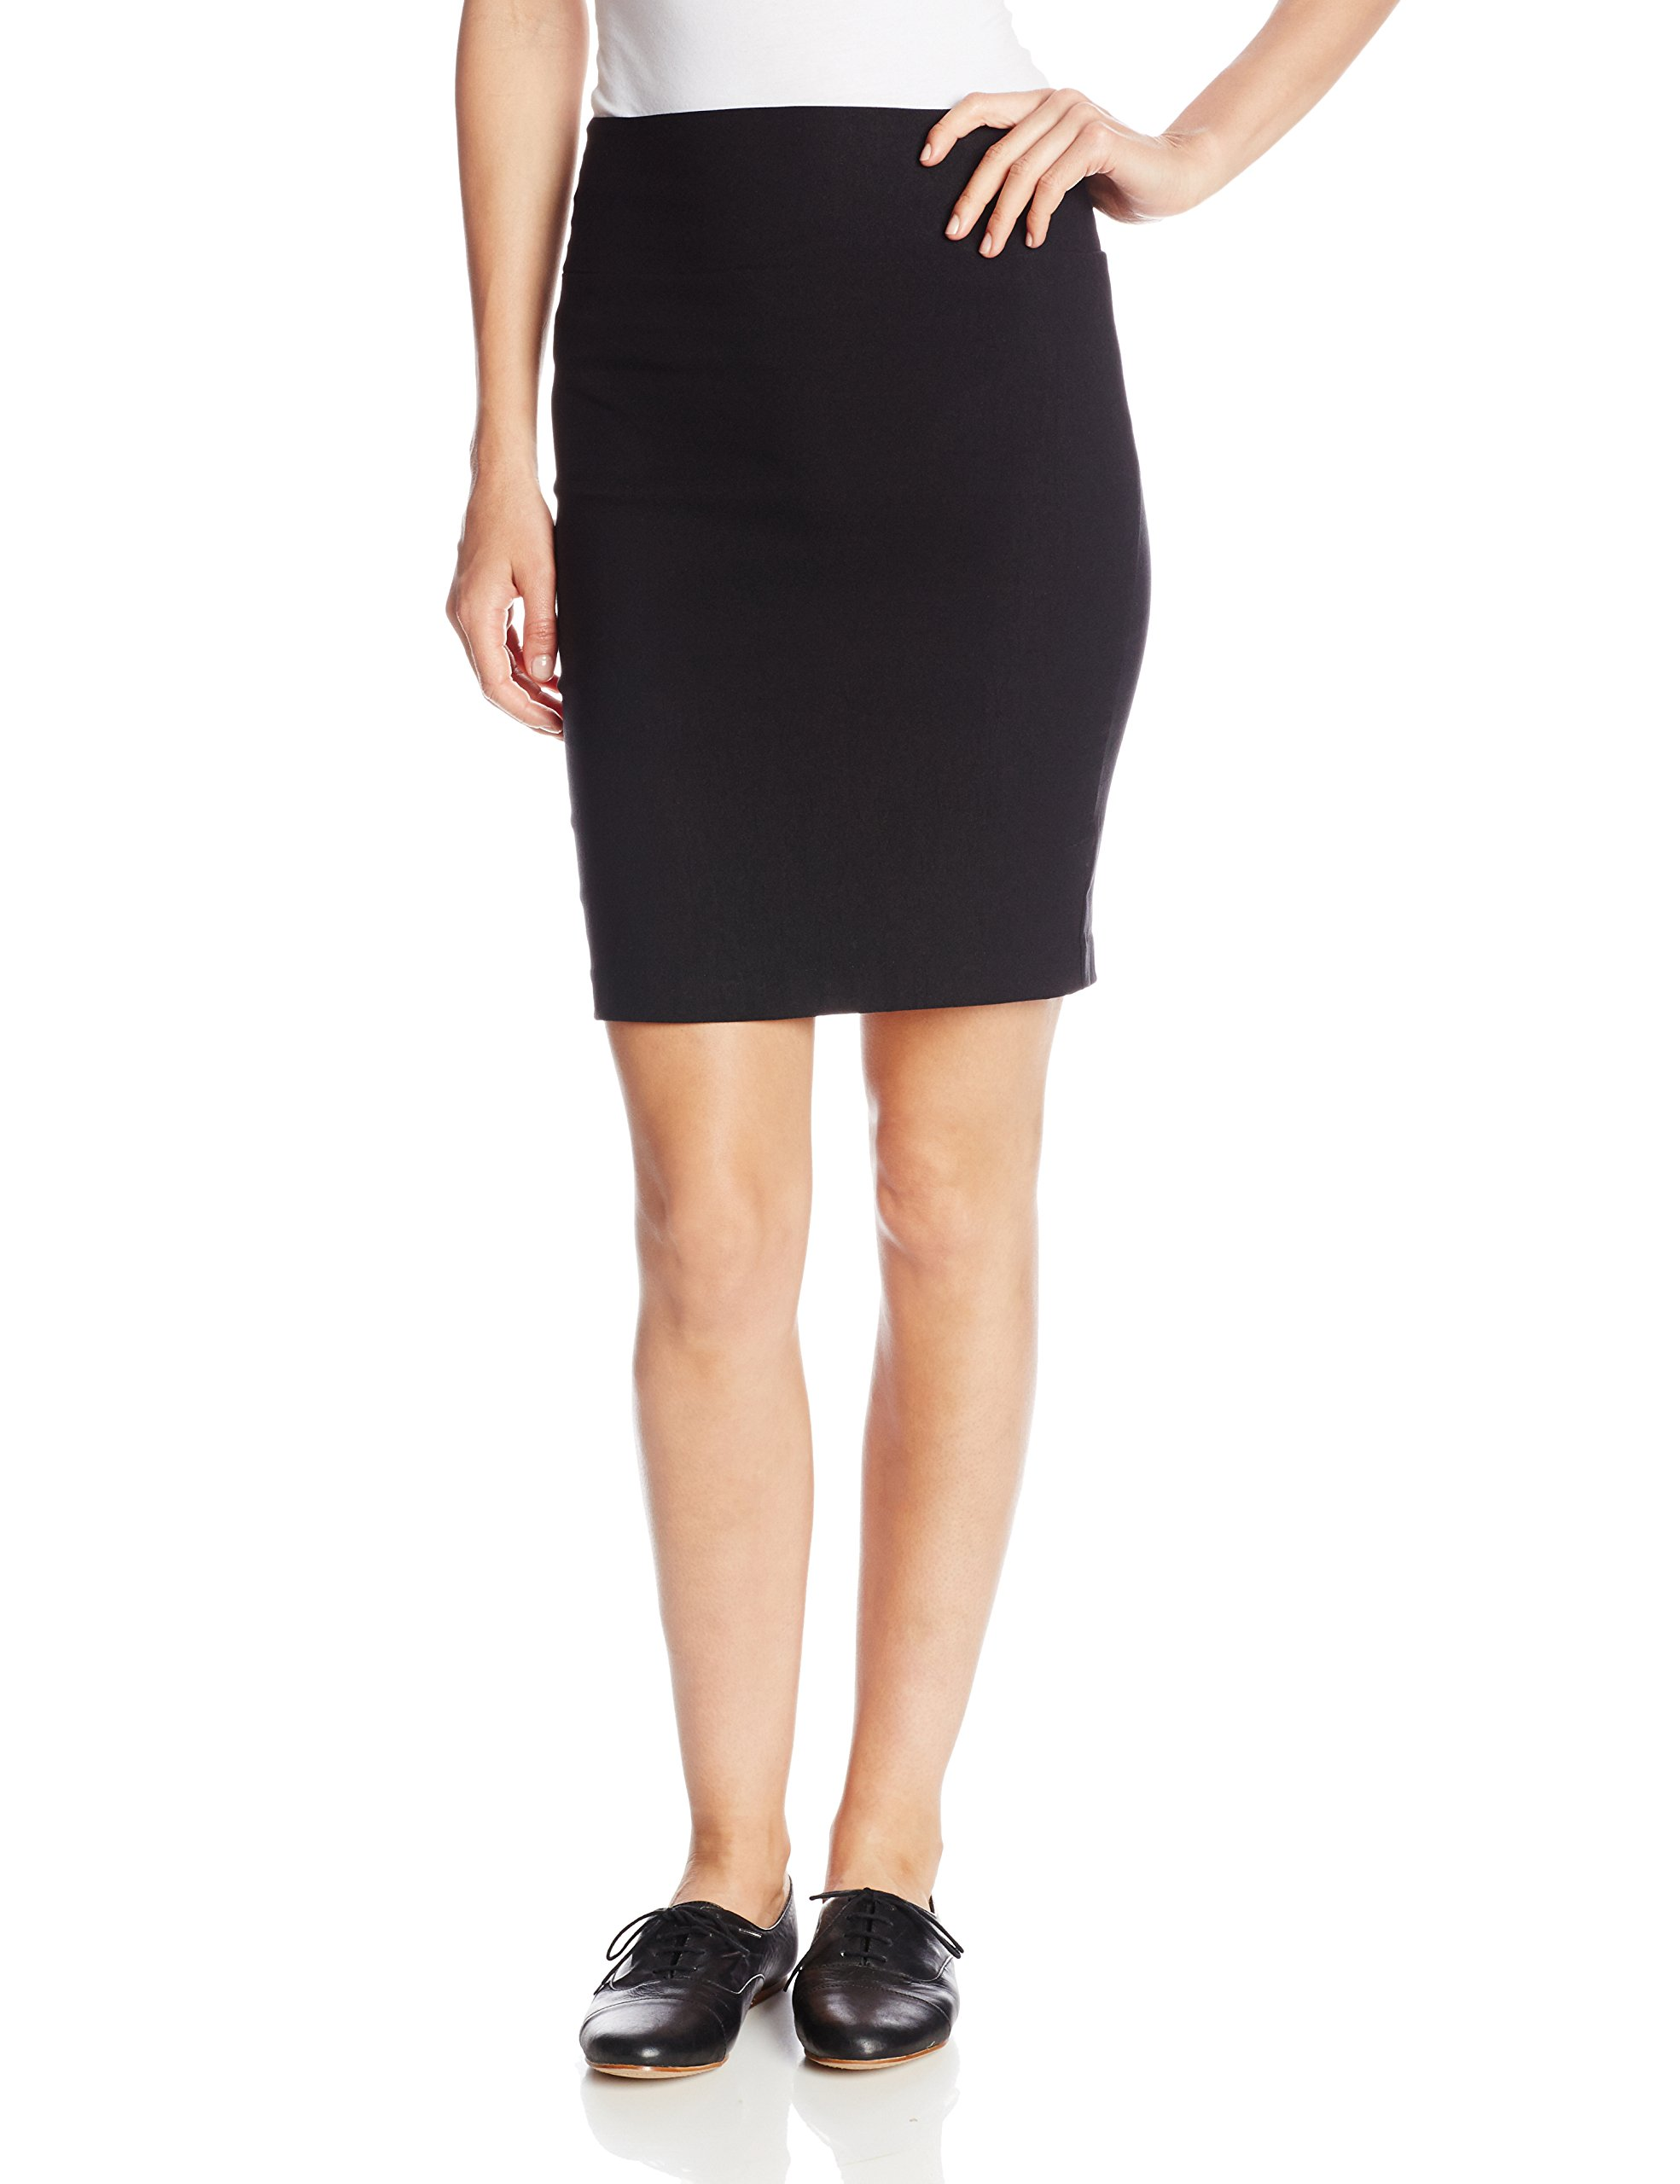 A. Byer Juniors Pull-On Slim Fitting Pencil Skirt, Black, Small